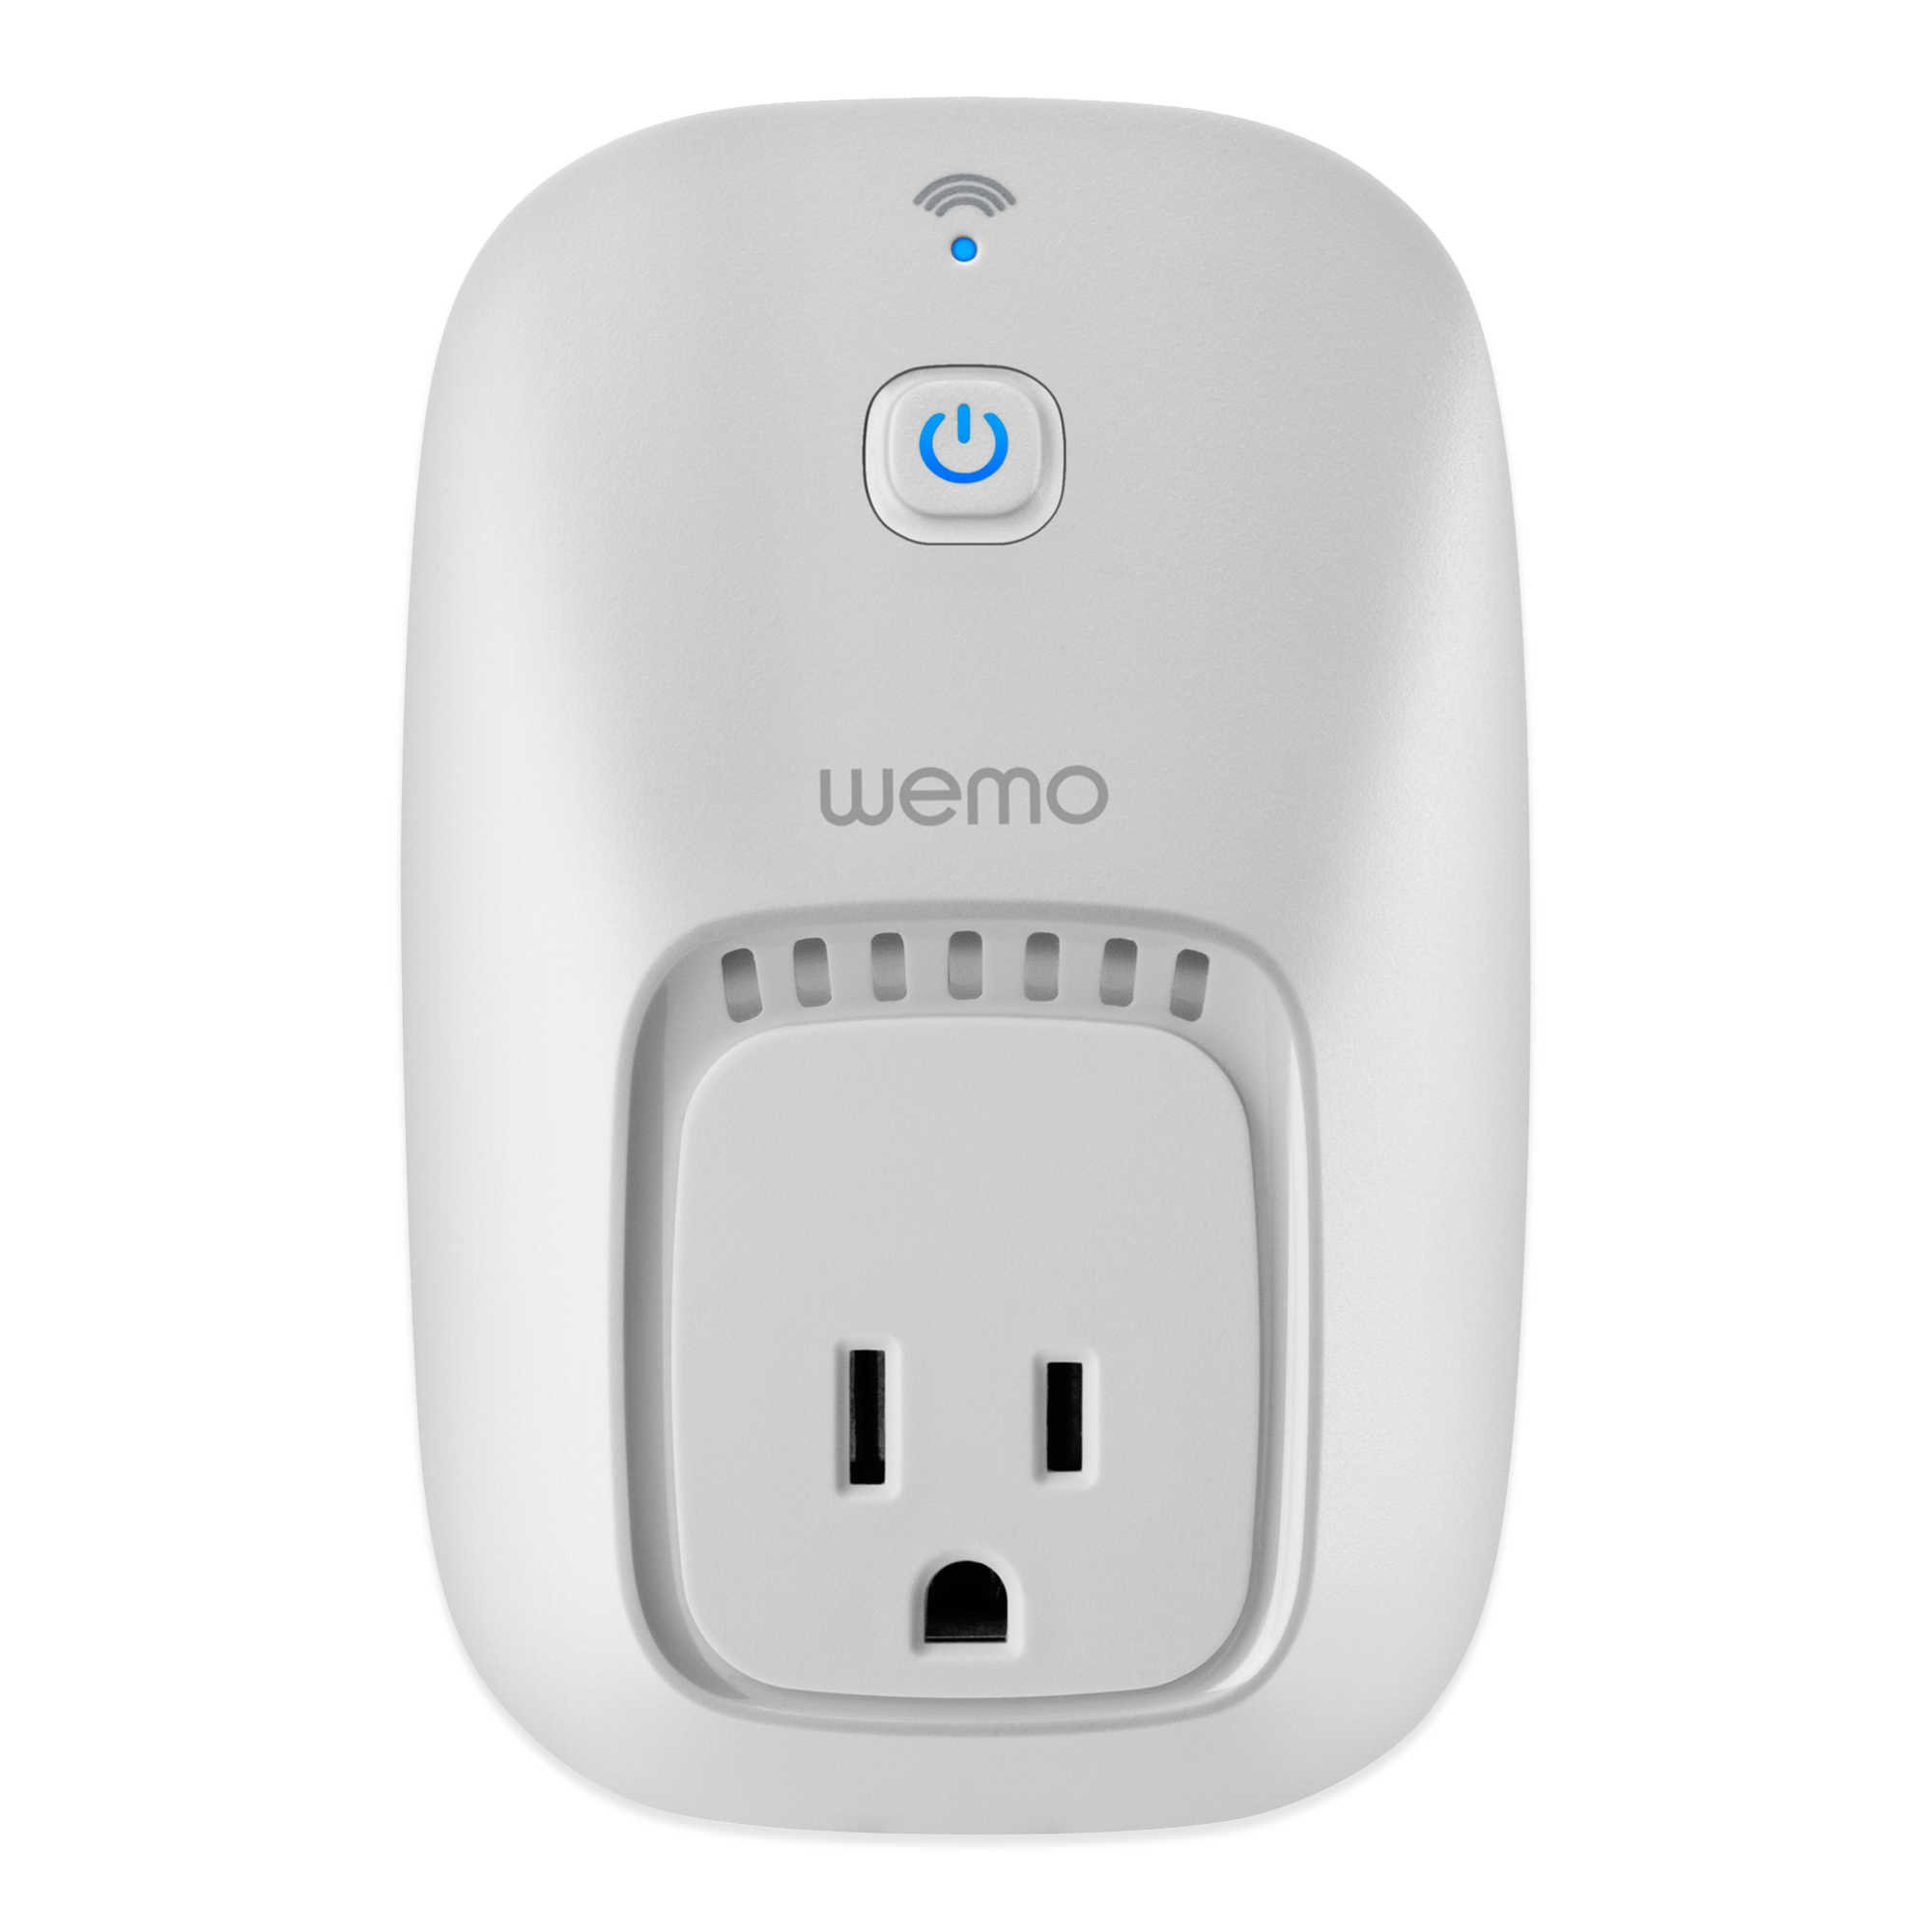 Wemo Smart Plug, Wi-Fi Enabled (Certified Refurbished)